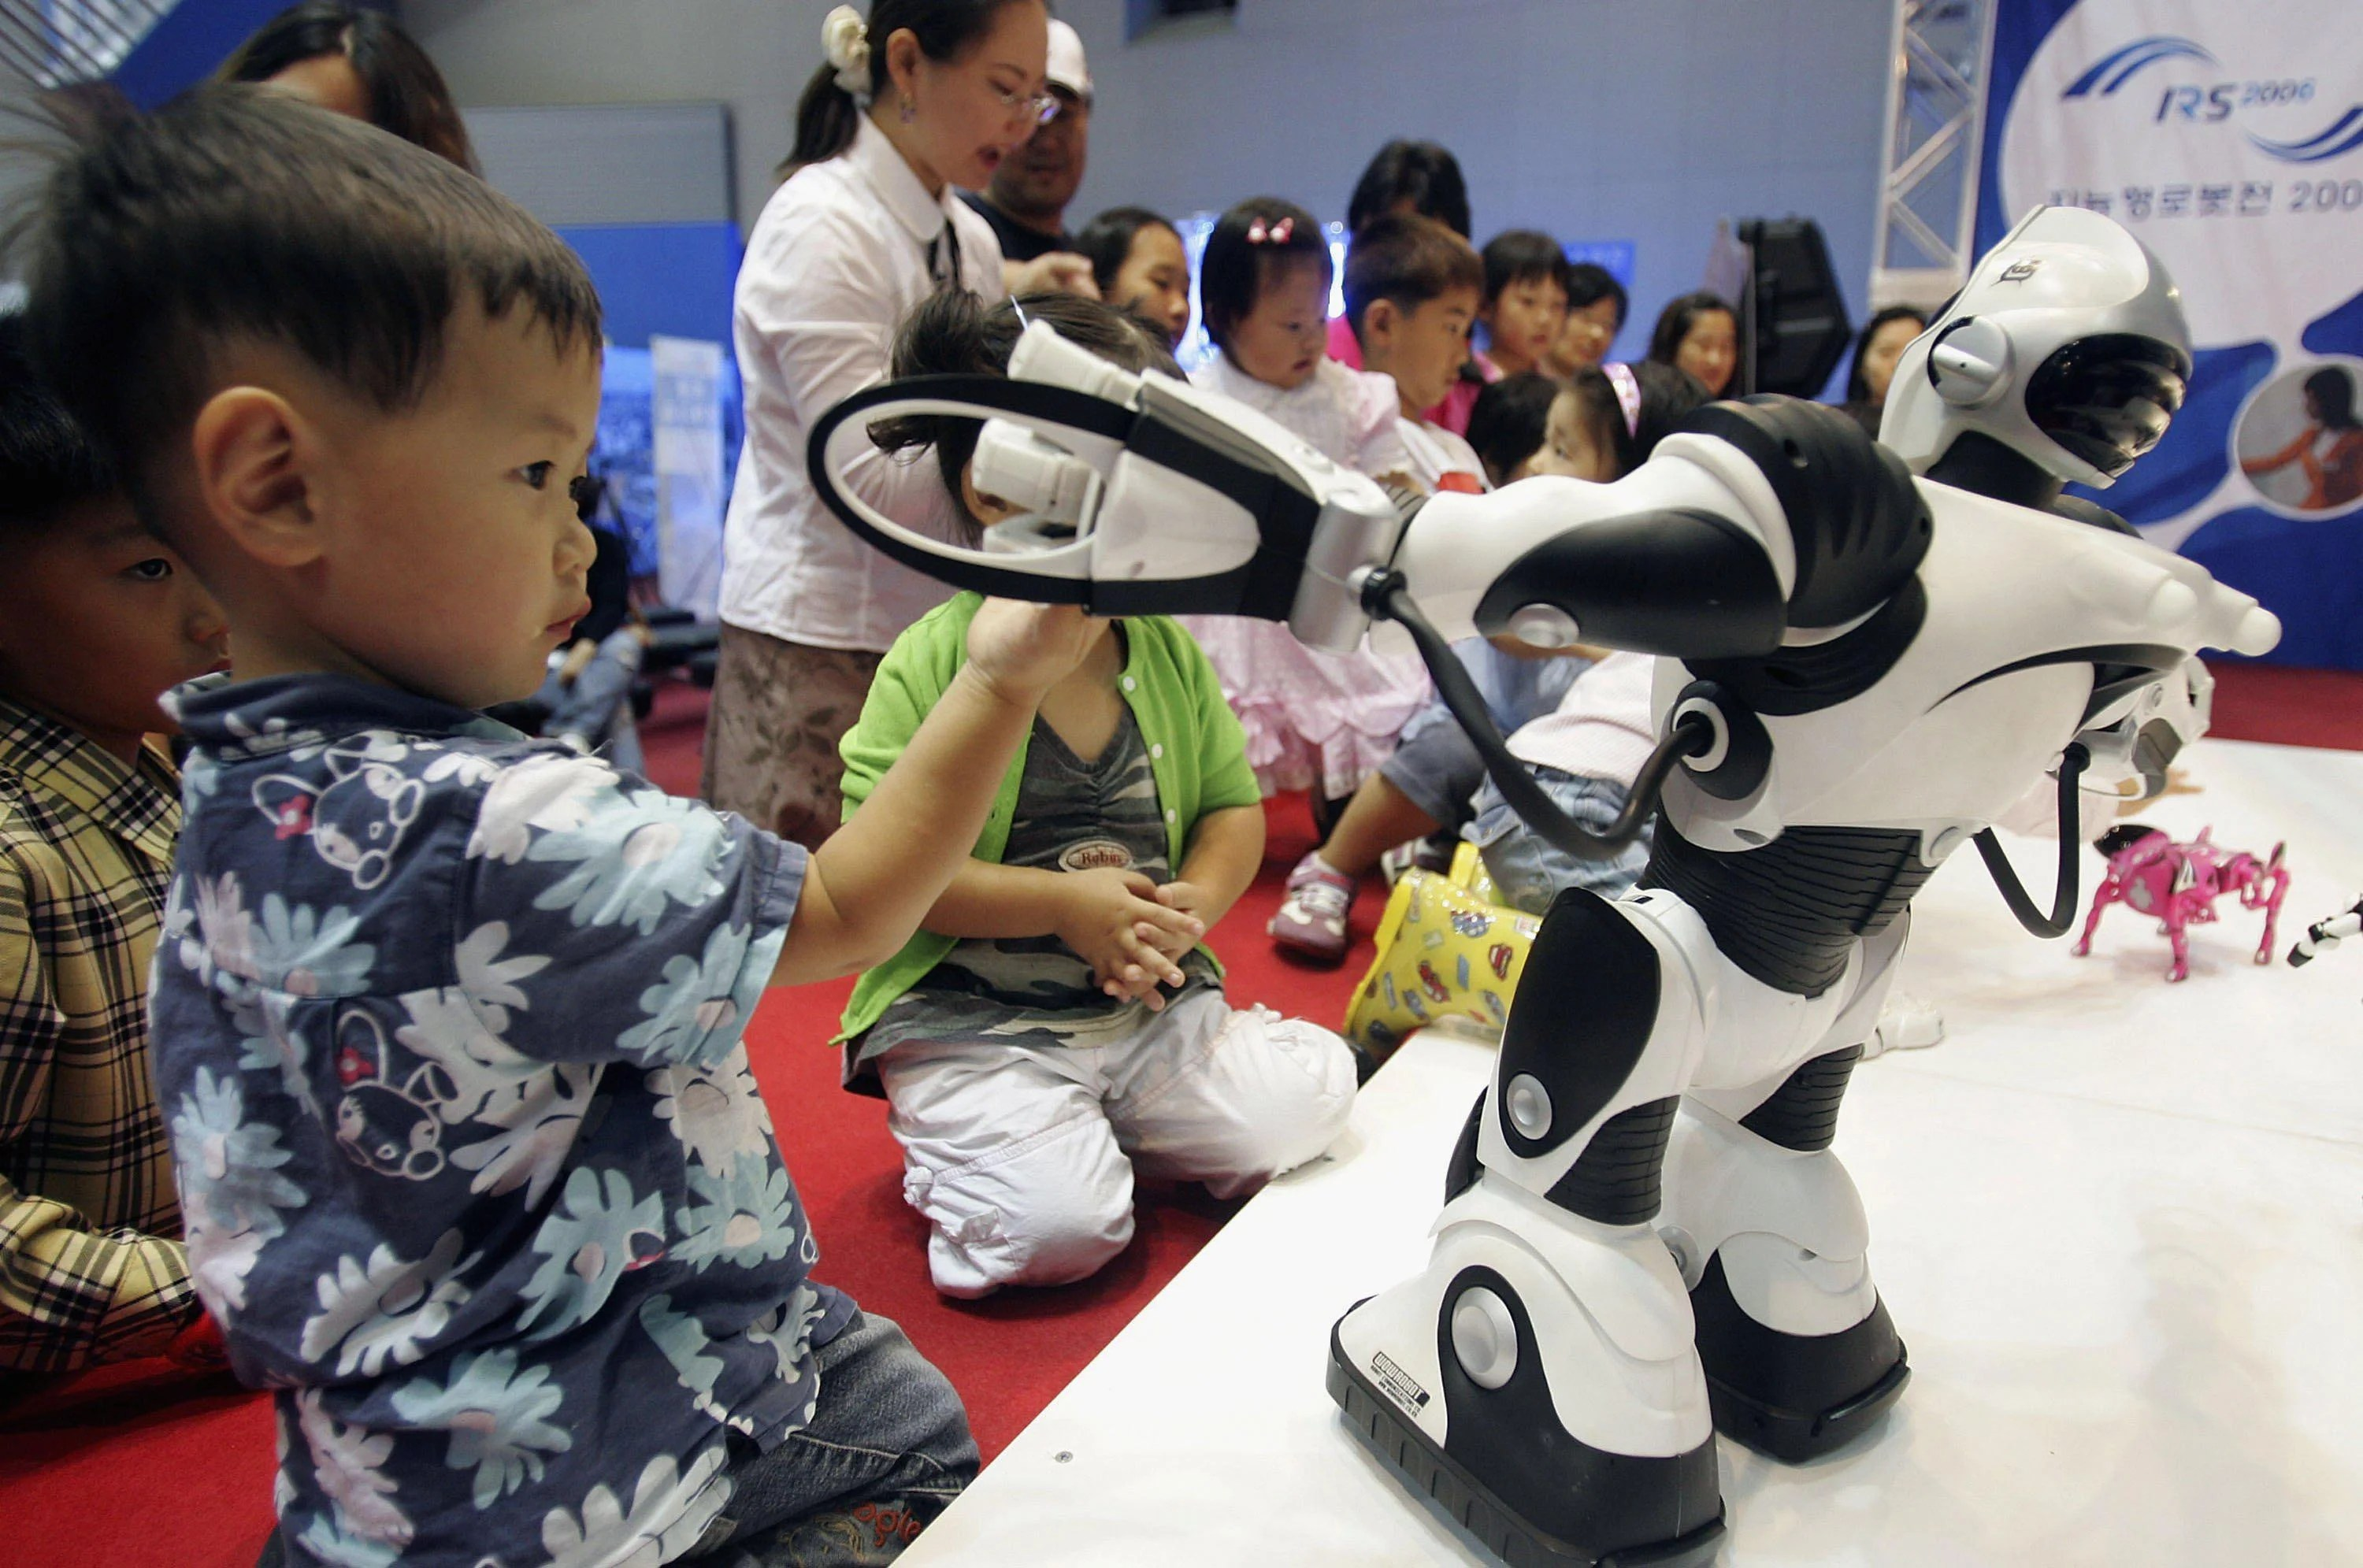 Children Robot Ai Robots Could Babysit Children If Liability Can Be Settled